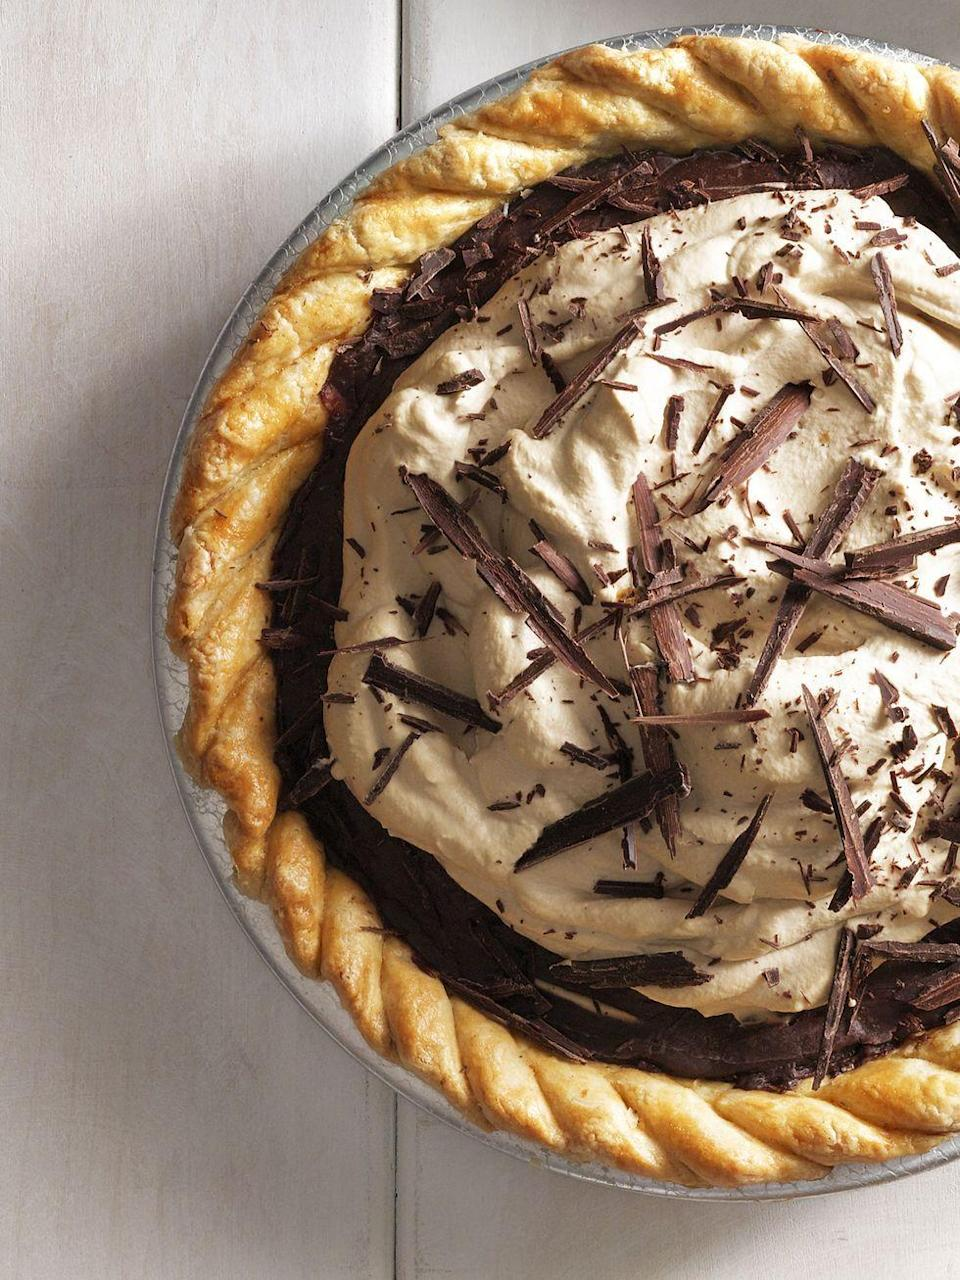 """<p>Buy the crust and this deliciously chocolatey pie recipe doesn't even have to touch an oven.</p><p><em><a href=""""https://www.countryliving.com/food-drinks/recipes/a5618/decadent-chocolate-espresso-pie-recipe-clx0914/"""" rel=""""nofollow noopener"""" target=""""_blank"""" data-ylk=""""slk:Get the recipe from Country Living »"""" class=""""link rapid-noclick-resp"""">Get the recipe from Country Living »</a></em></p><p><strong>RELATED: </strong><a href=""""https://www.goodhousekeeping.com/food-recipes/dessert/g822/pie-recipes/"""" rel=""""nofollow noopener"""" target=""""_blank"""" data-ylk=""""slk:35 Delicious Pie Recipes Anyone Can Make"""" class=""""link rapid-noclick-resp"""">35 Delicious Pie Recipes Anyone Can Make</a><br></p>"""